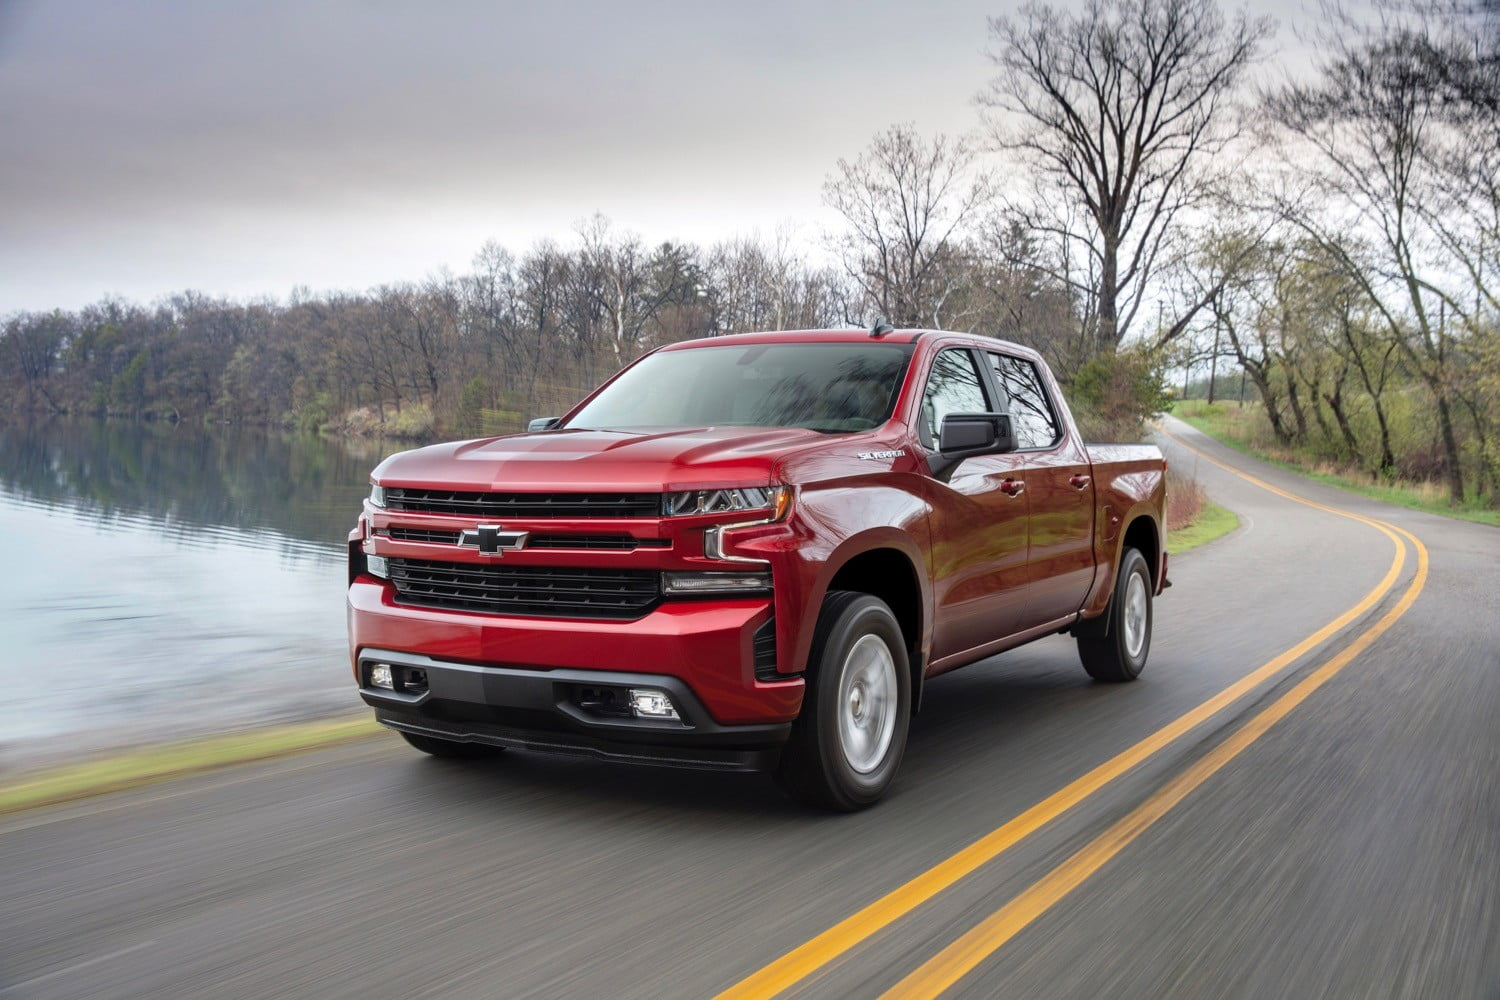 2019 Chevrolet Silverado Gets 2 7-Liter Turbo Four-Cylinder